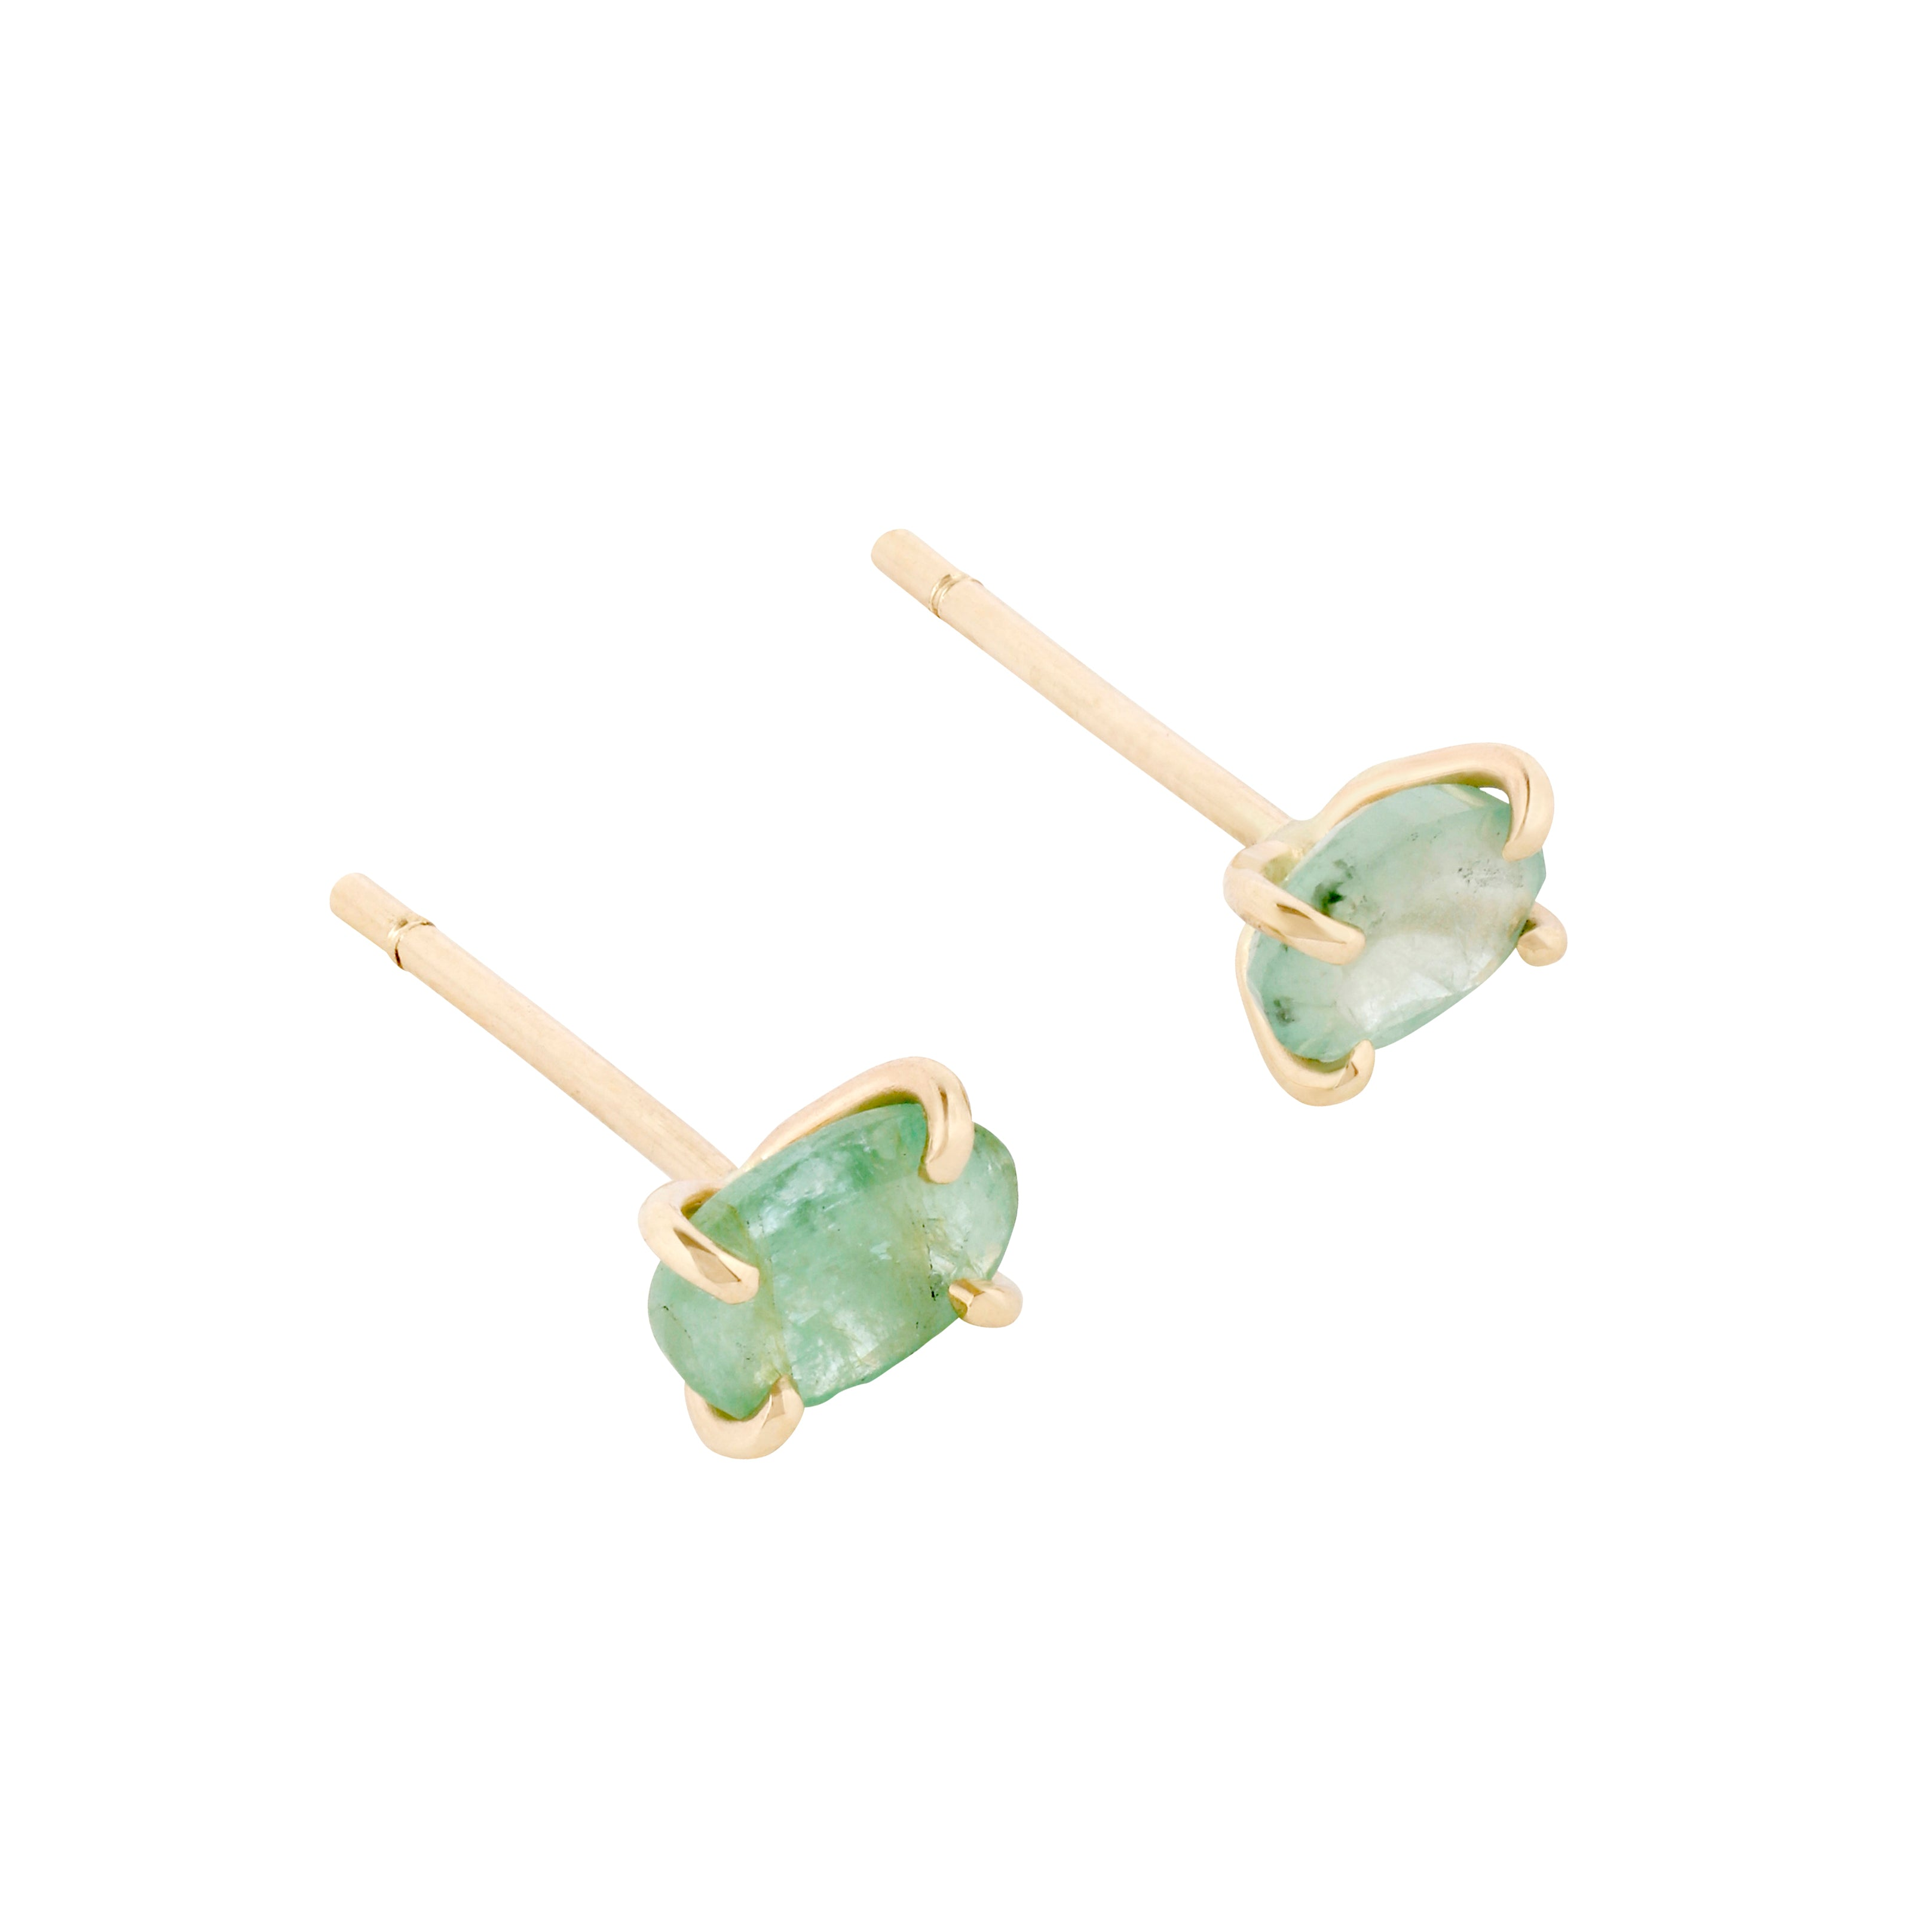 Gara Danielle 14k Gold Green Sapphire Earrings